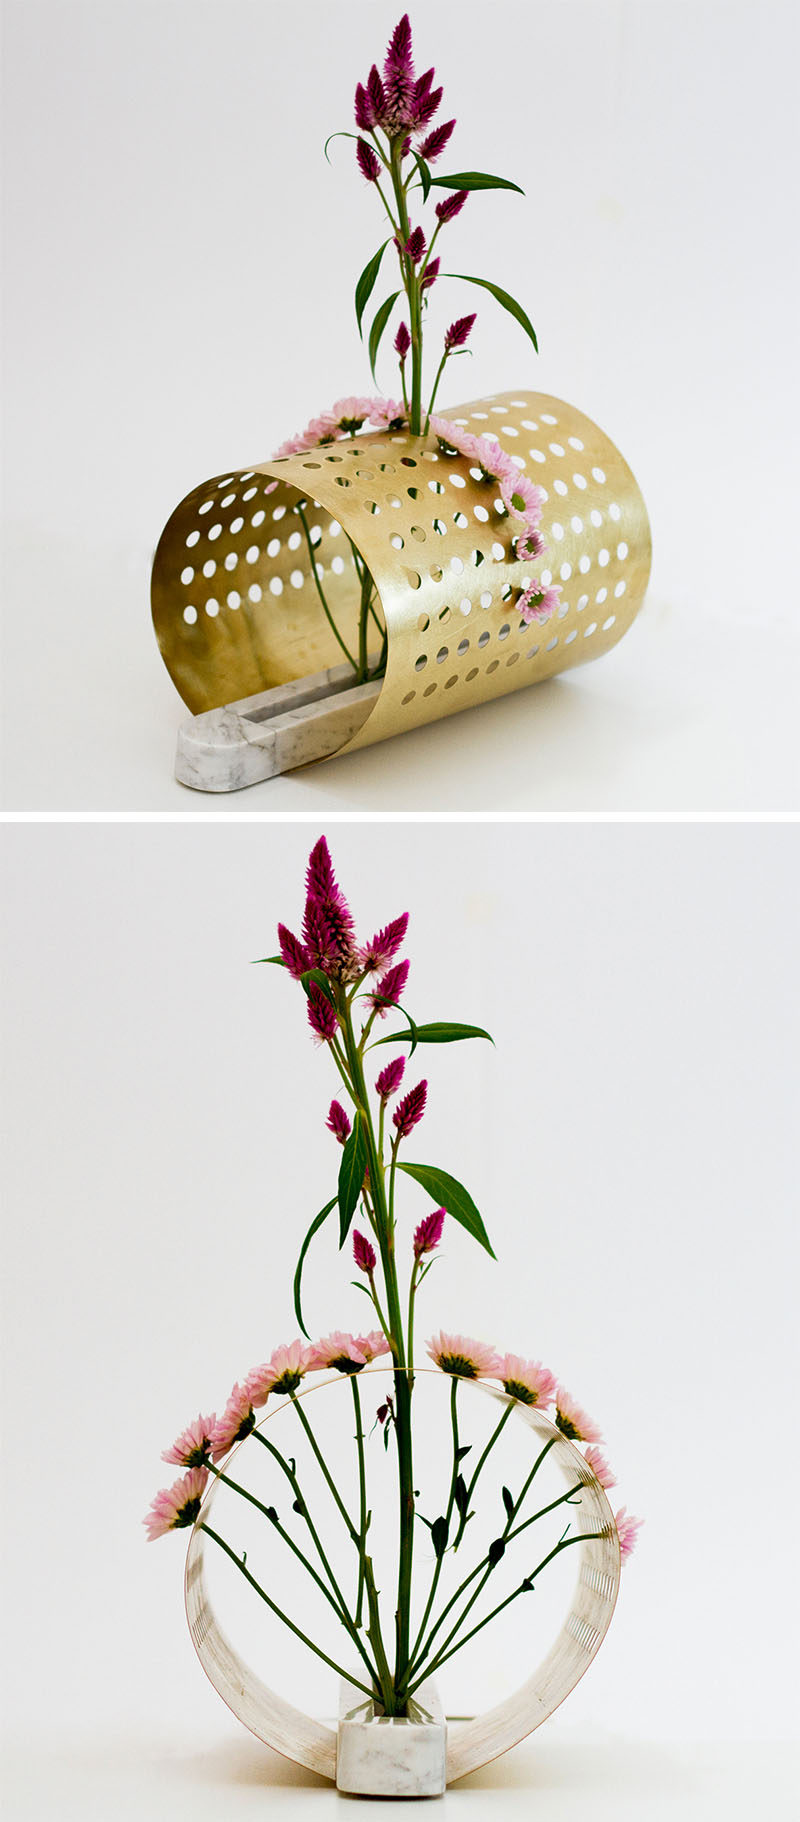 Creative Floral Designs - These vases were inspired by japanese floral arrangements